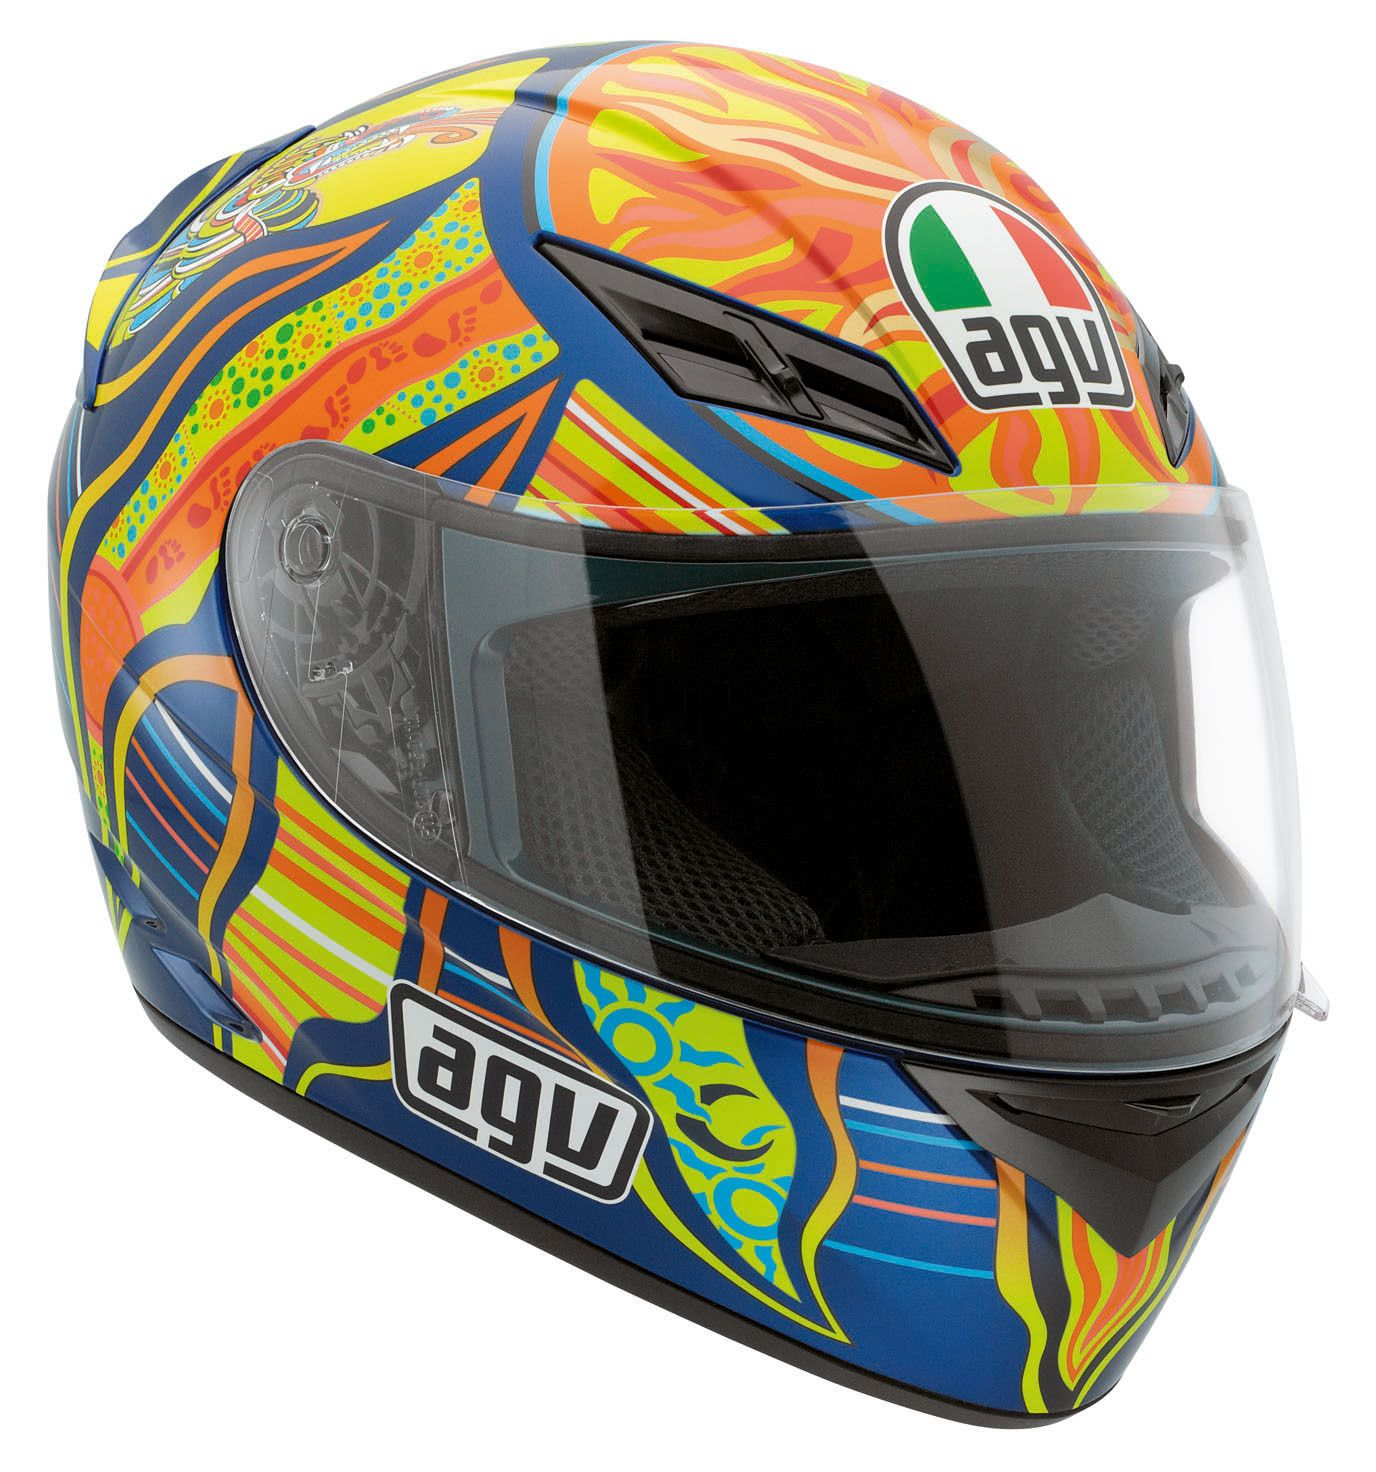 agv k3 5 continents helmet cycle gear. Black Bedroom Furniture Sets. Home Design Ideas